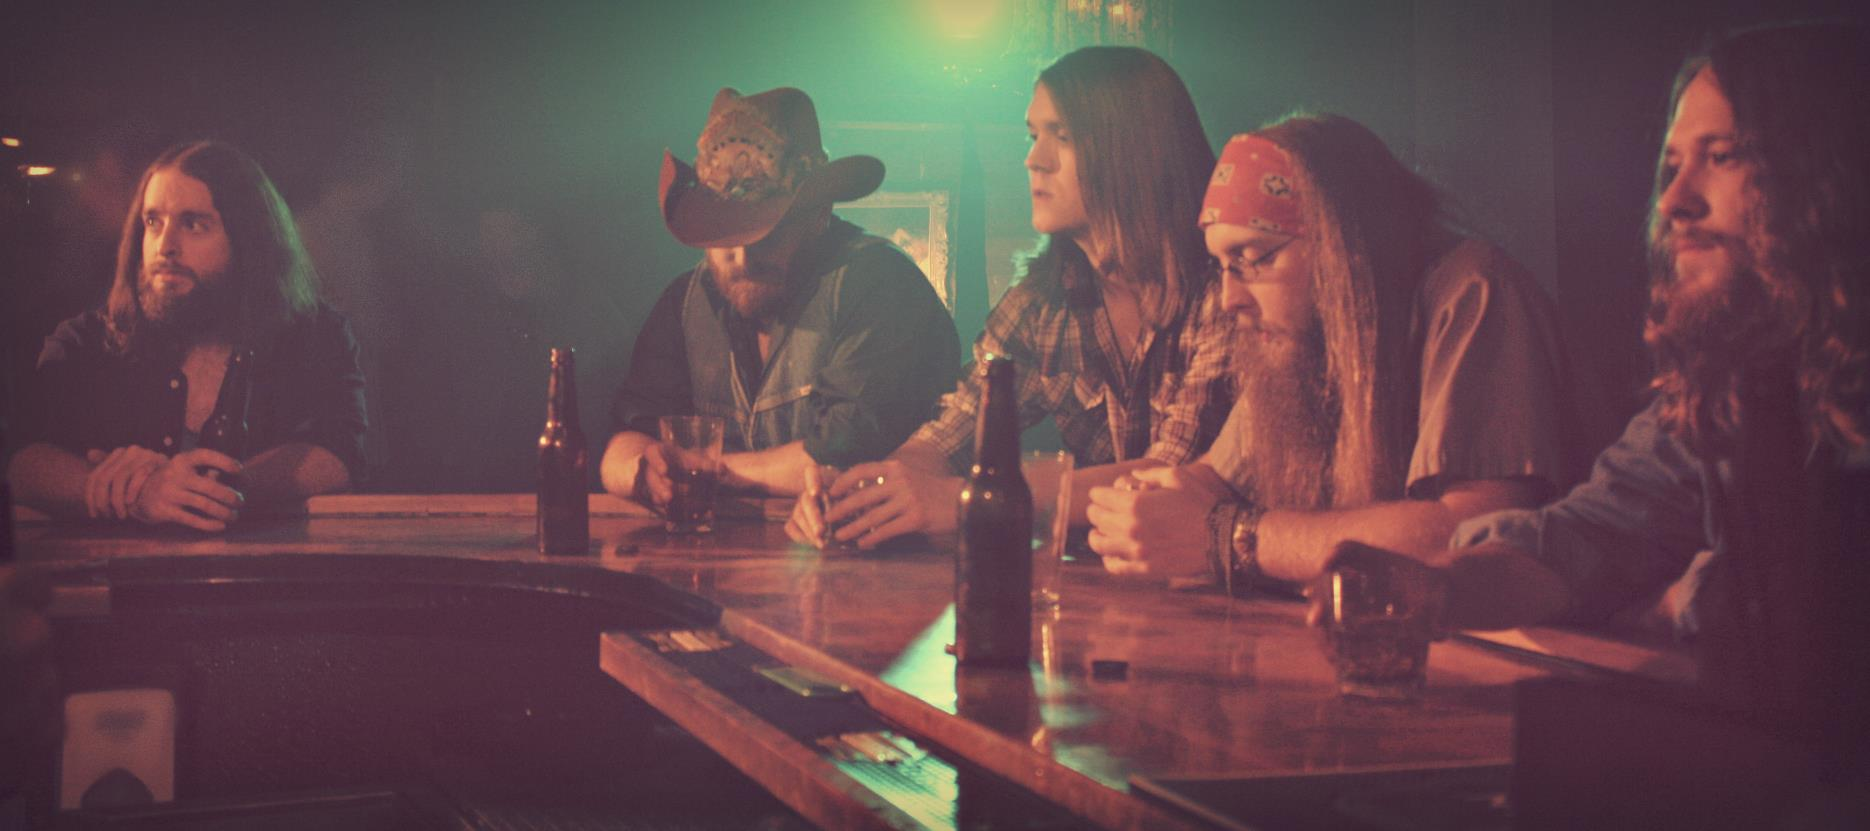 WhiskeyMyers